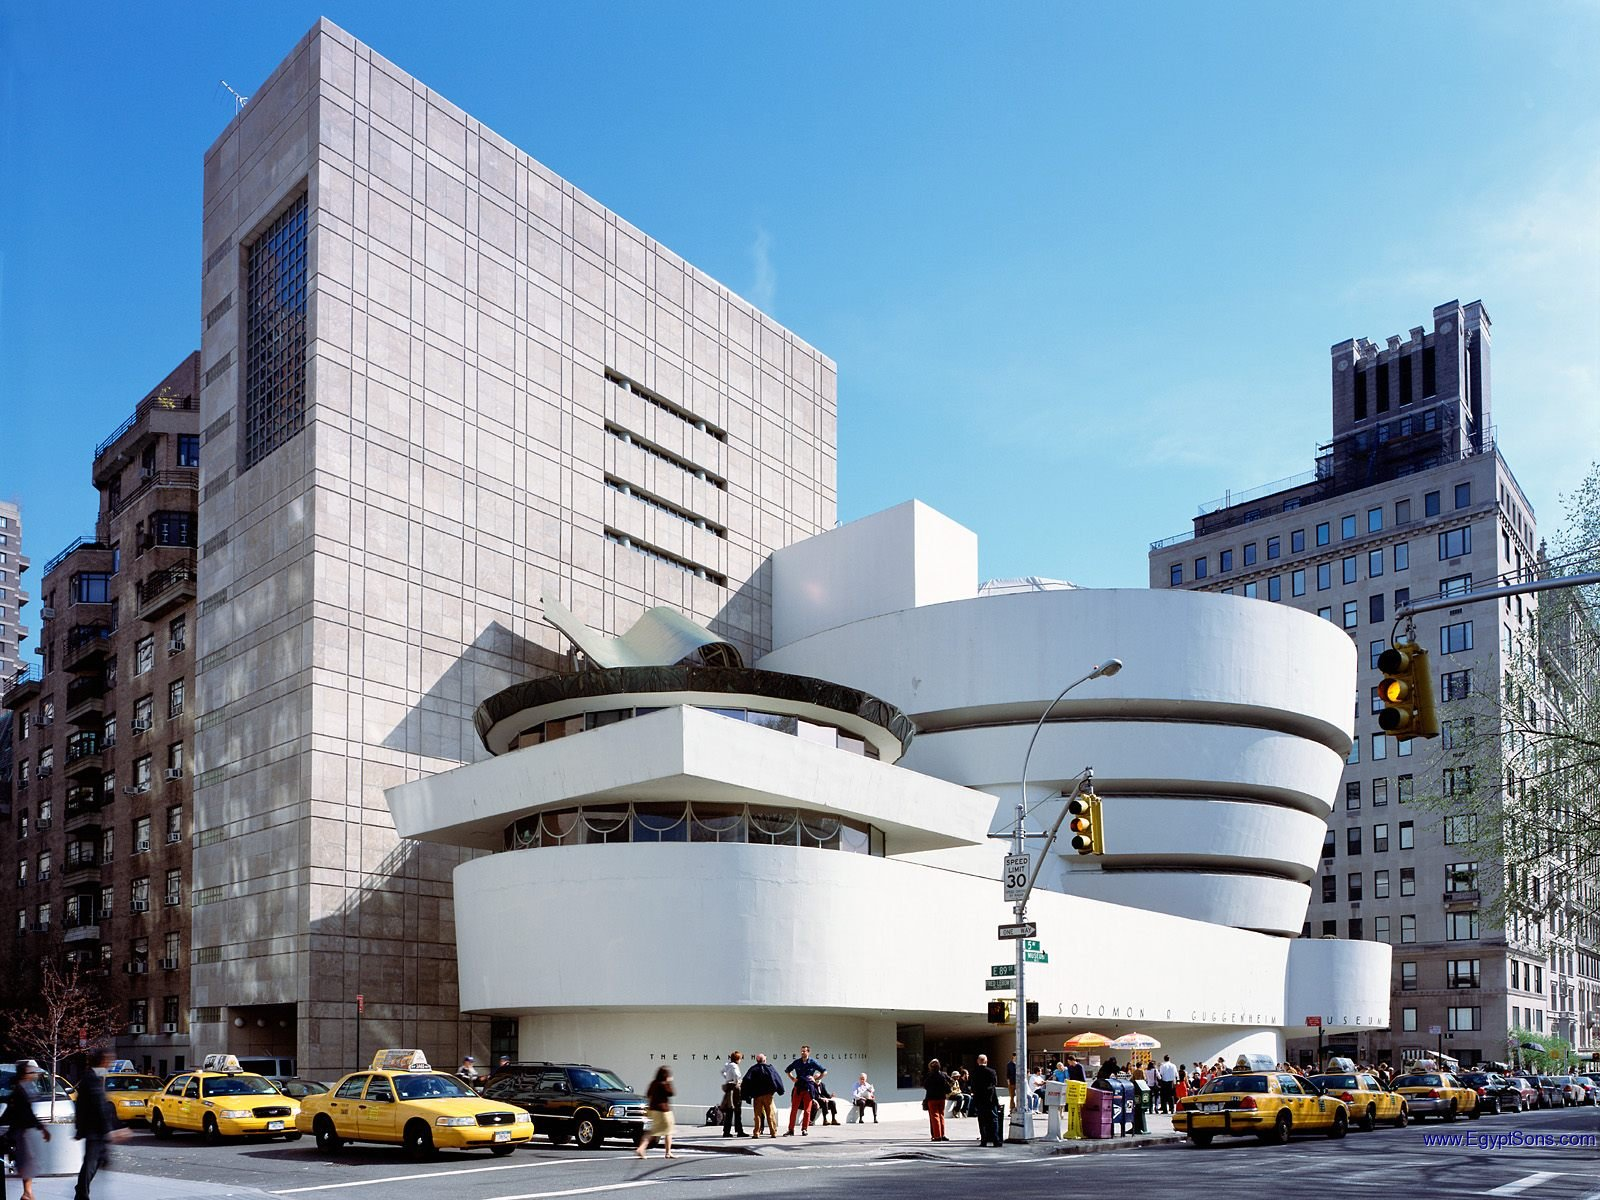 Guggenheim Museum. 5th Ave and 88th St